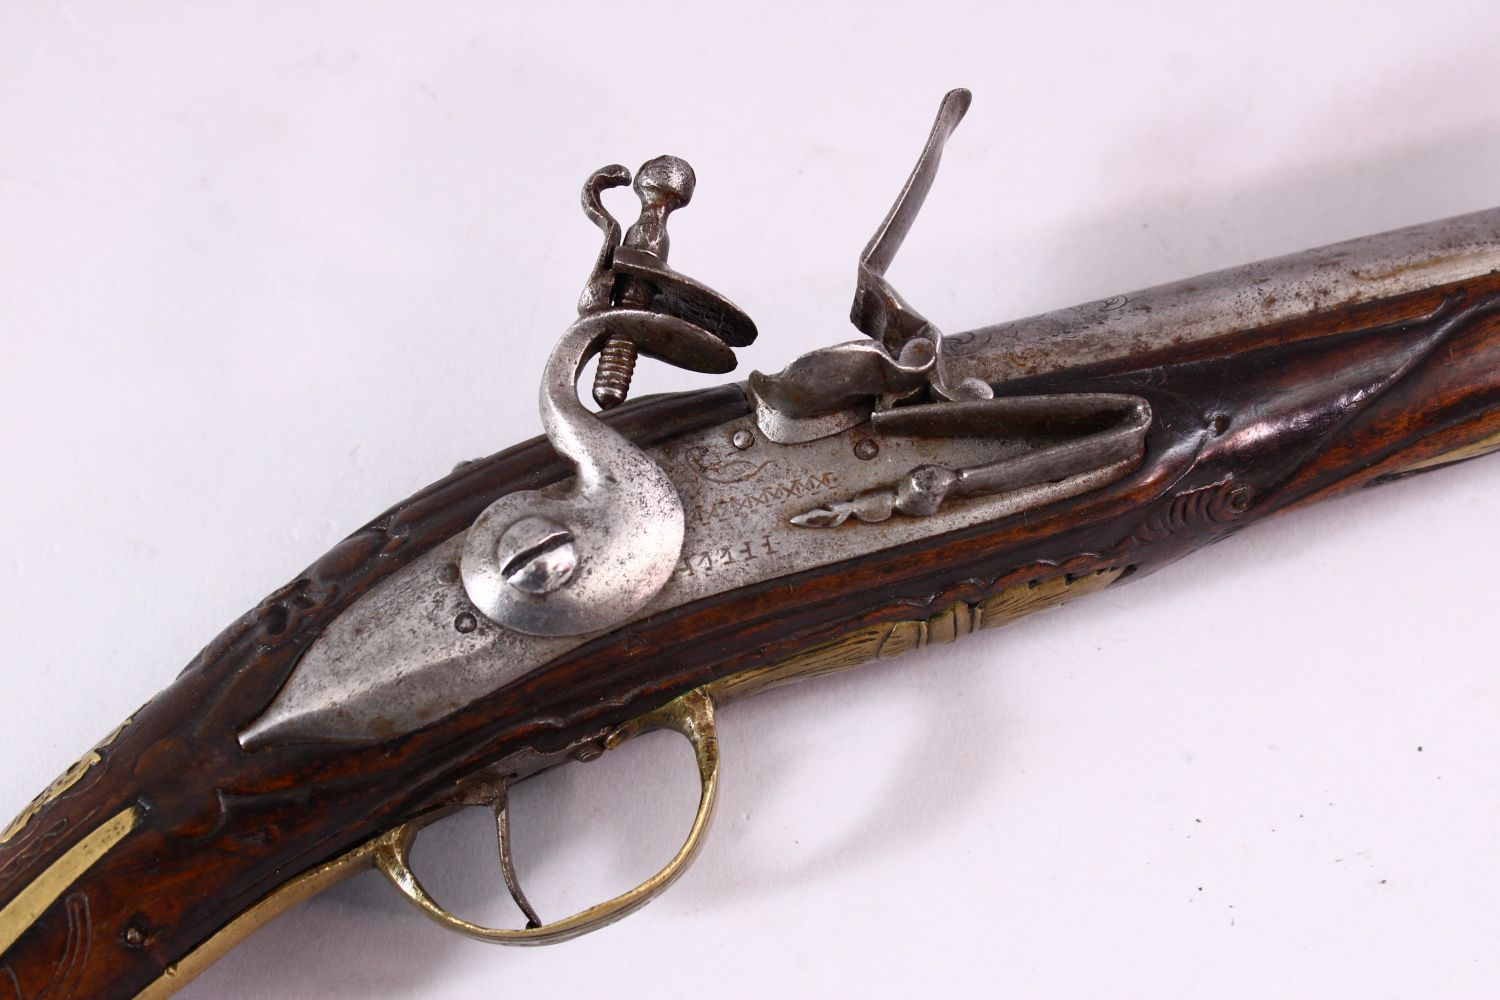 AN 18TH CENTURY ANGLO INDIAN FLINTLOCK PISTOL, engraved barrel, carved stock with wire inlaid - Image 2 of 4